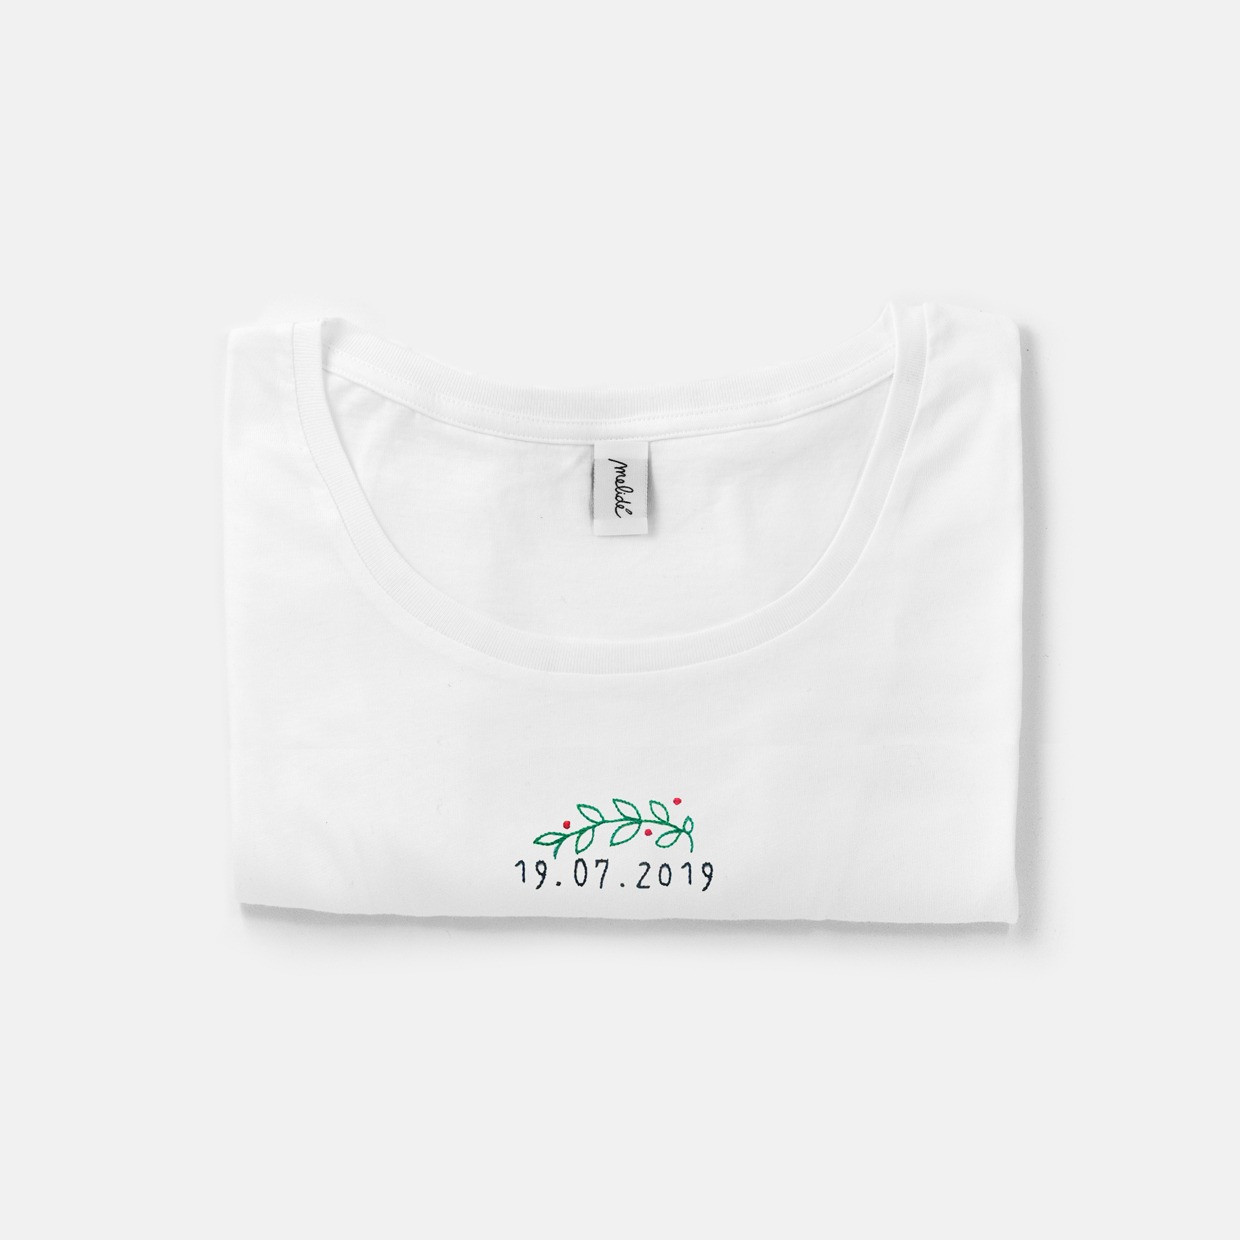 The GRADUATION DAY wide neck tee - crown